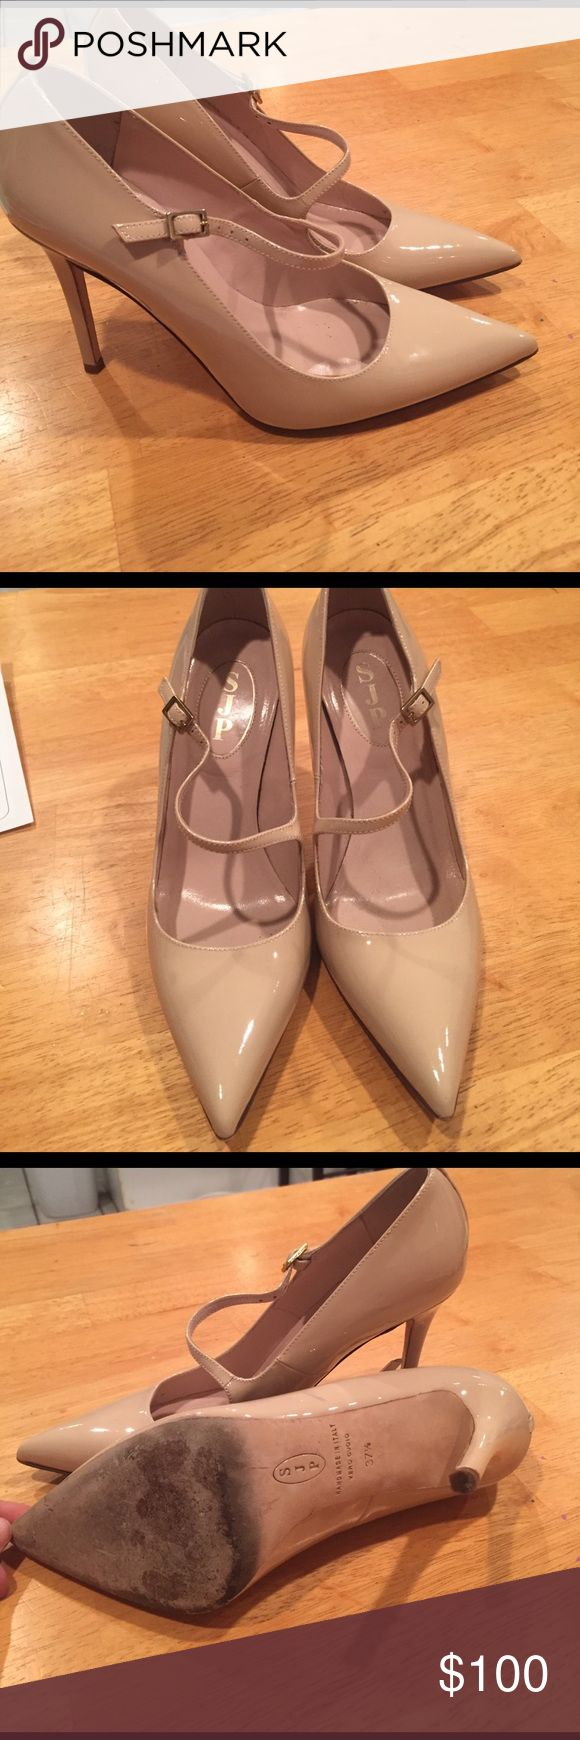 Sarah Jessica Parker patent leather heels. 7 1/2 SJP. 4 inch heels.   Beautiful condition, worn on bottom as shown.  Two scuffs also shown Shoes Heels